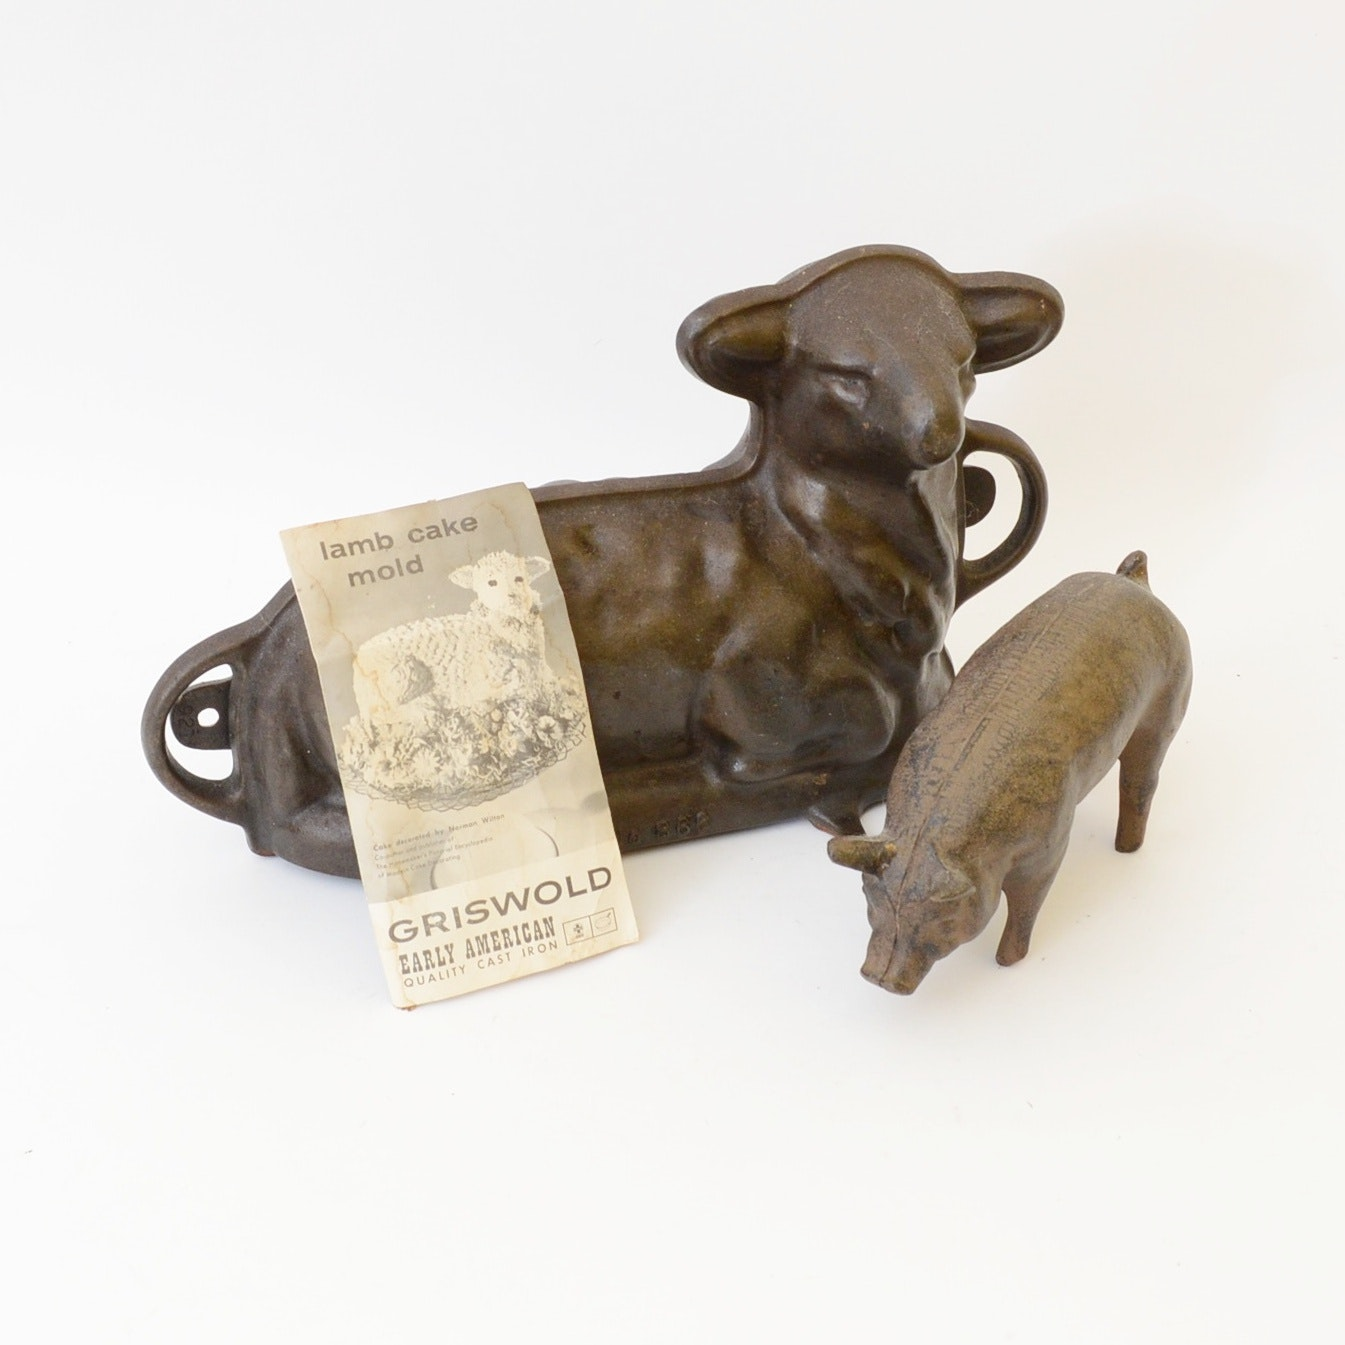 Vintage Cast Iron Griswold Lamb Cake Mold and Pig